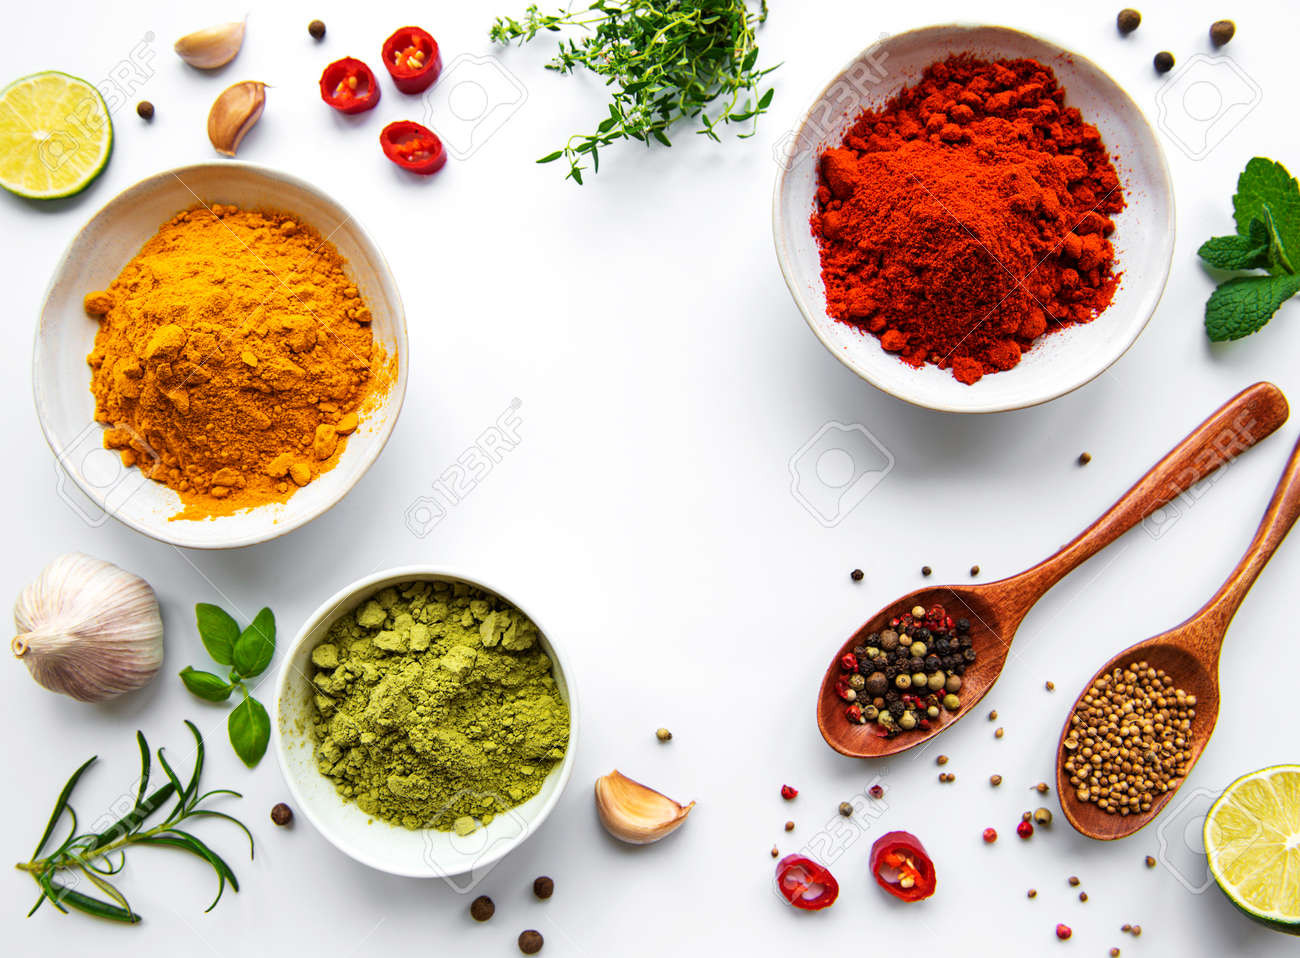 Various spices isolated on white background, top view - 168184753